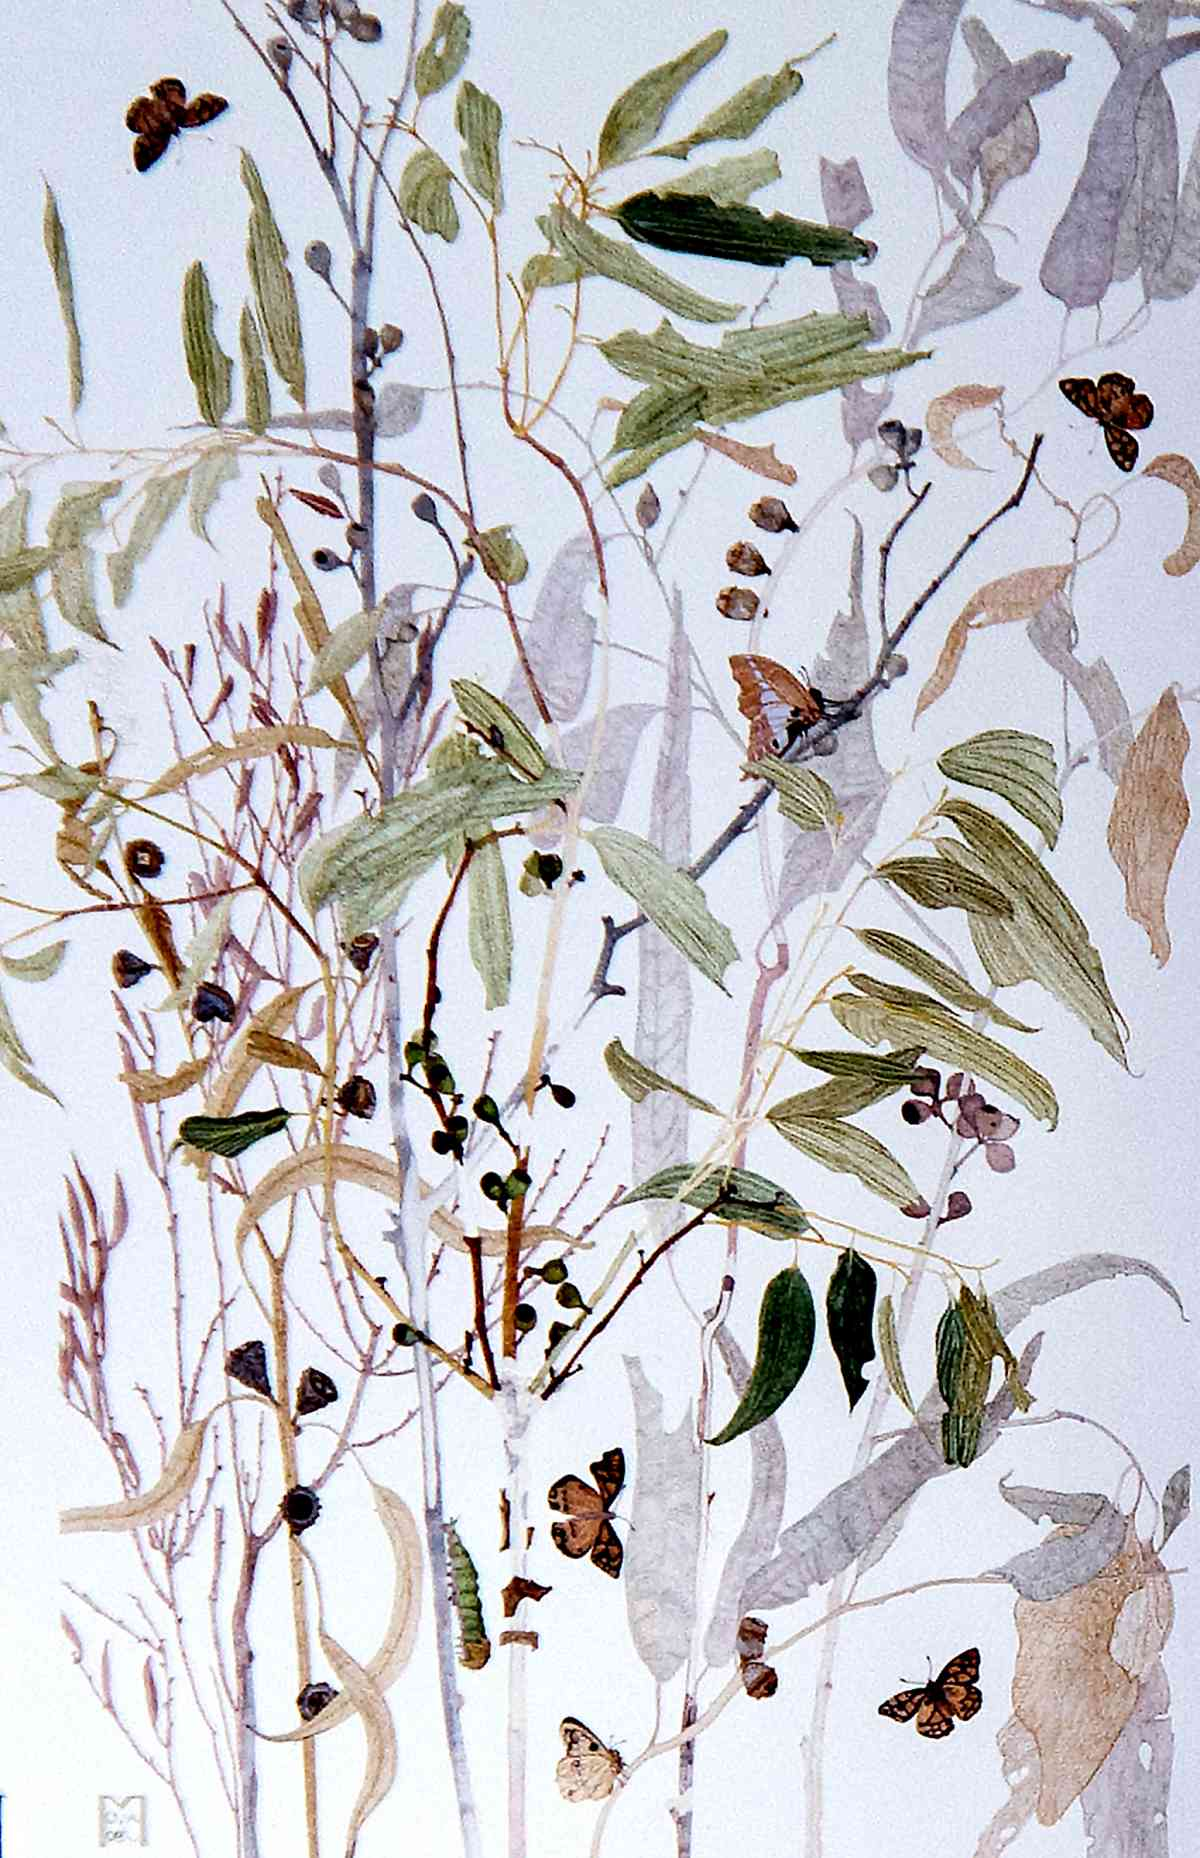 Eucalypt with butterflies, from Artistic Reflections on the Tree_watercolour_102 x 75mm